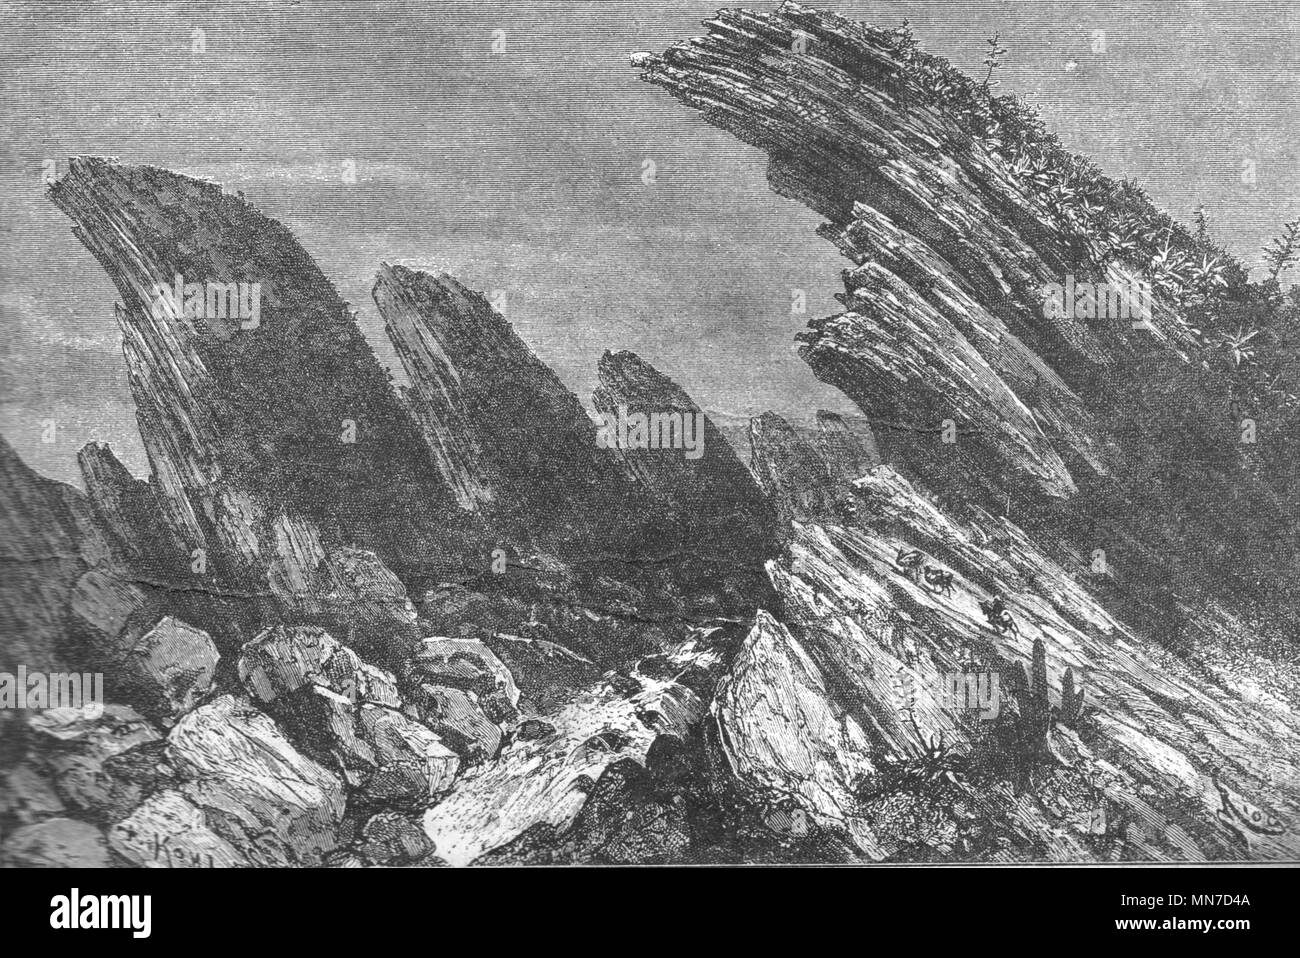 Cordilleras mountains. Vintage engraved illustration. Published in magazine in 1900. - Stock Image